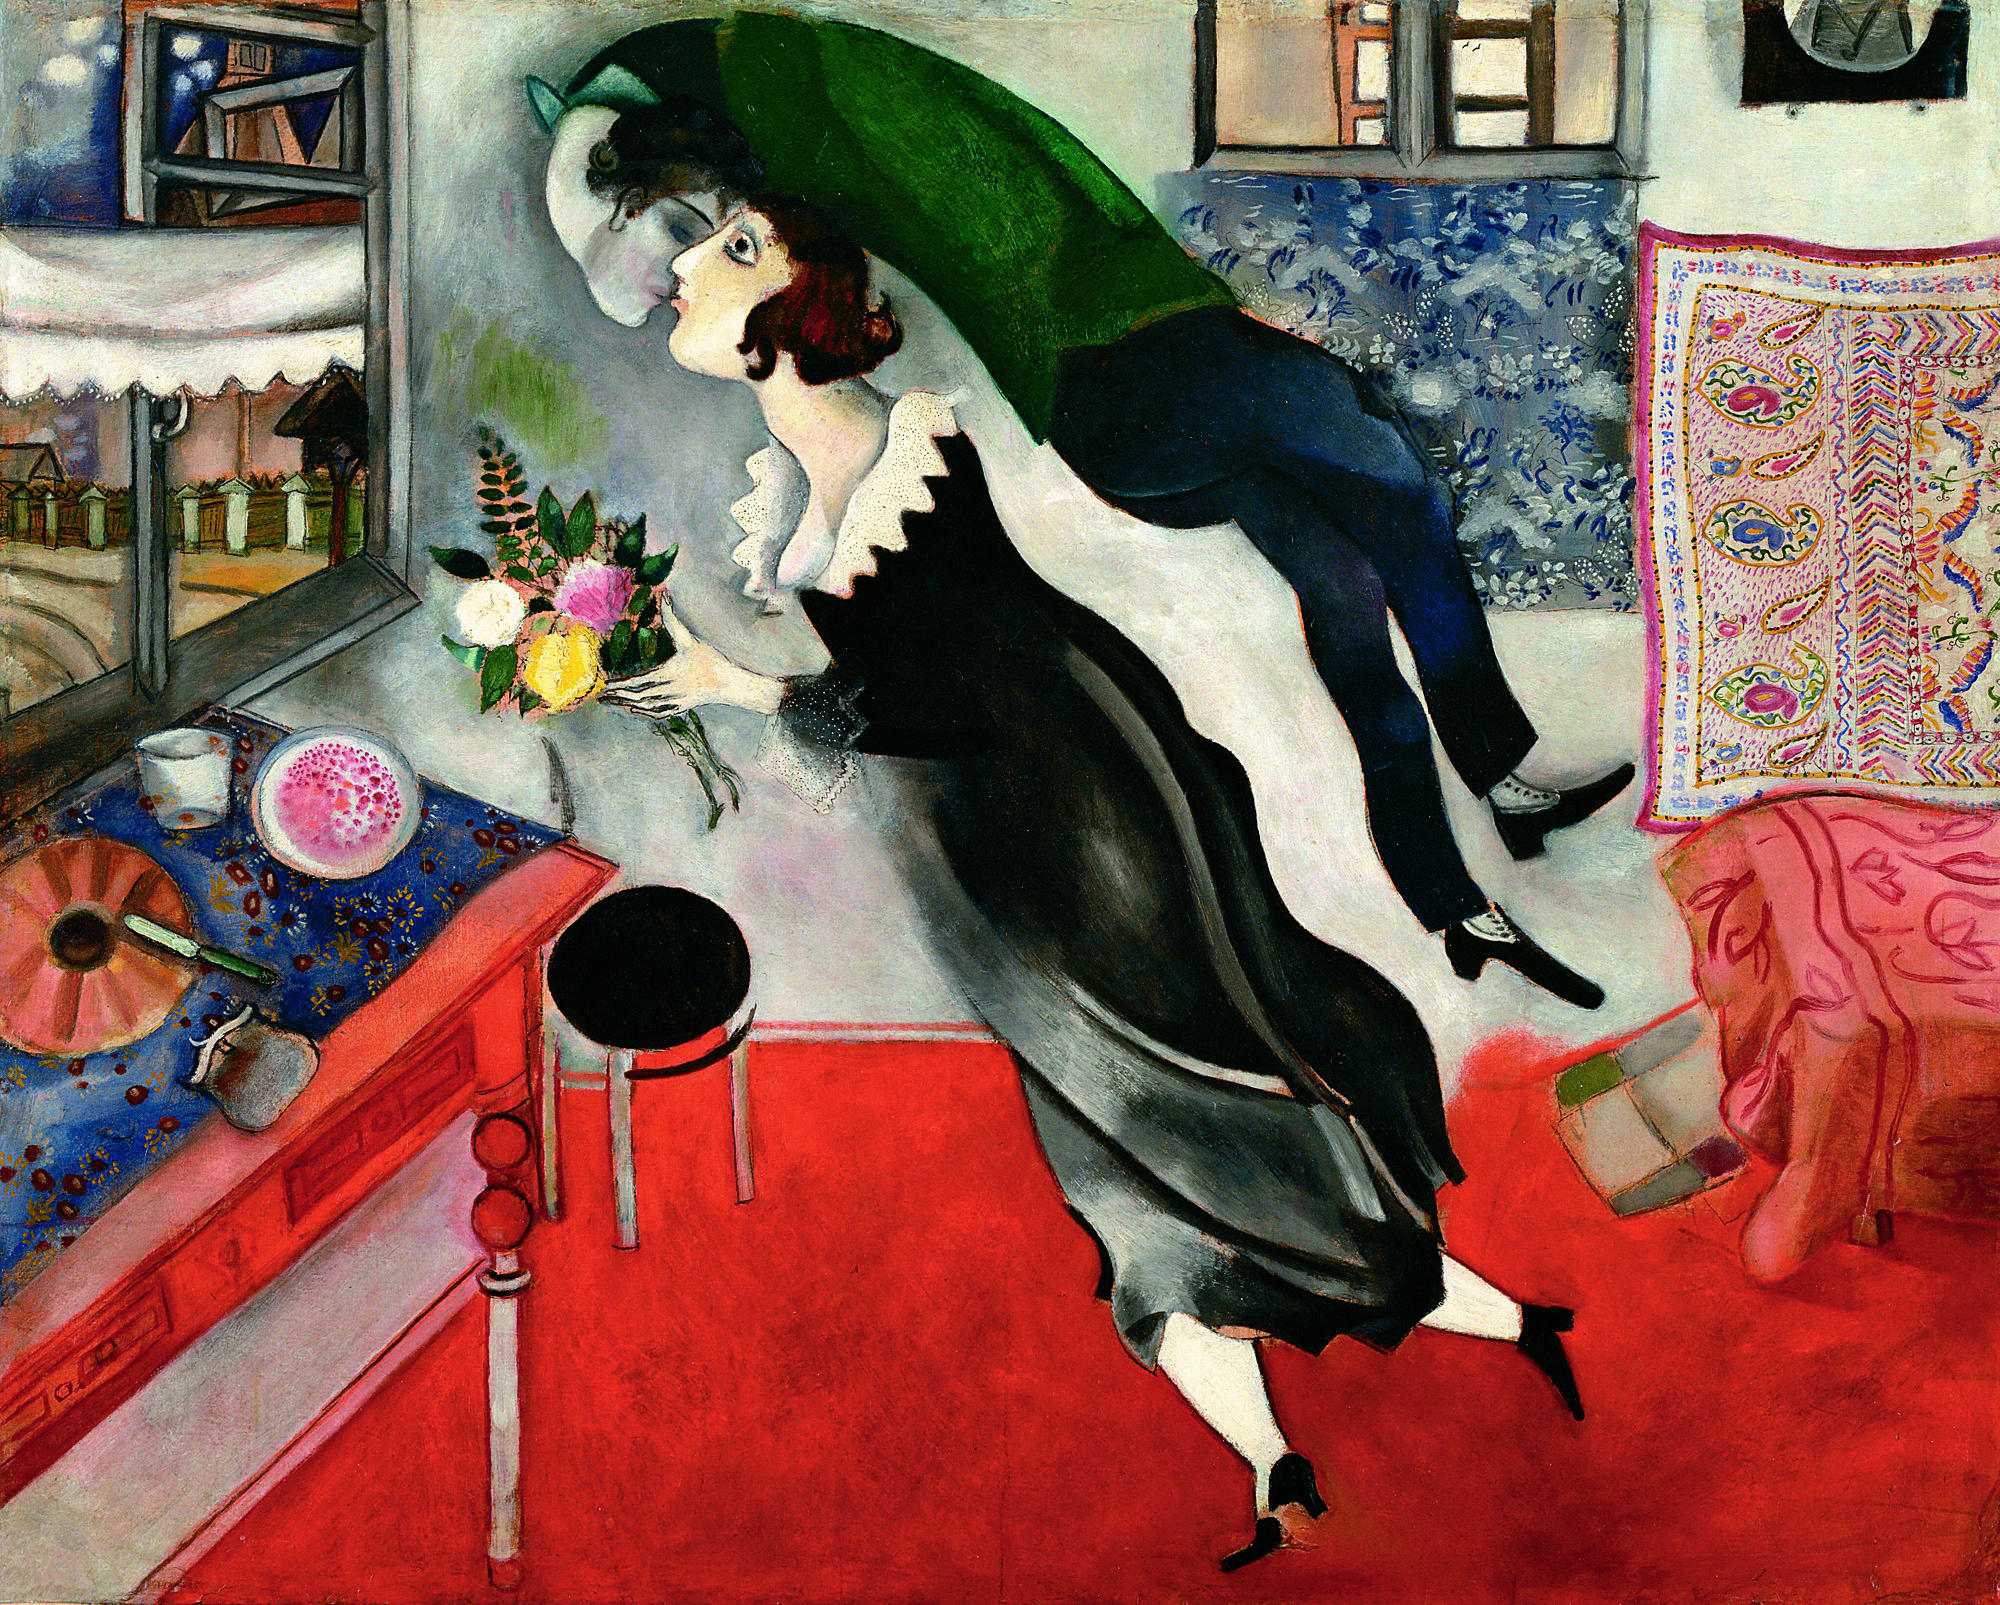 Marc Chagall, Il compleanno, 1915.